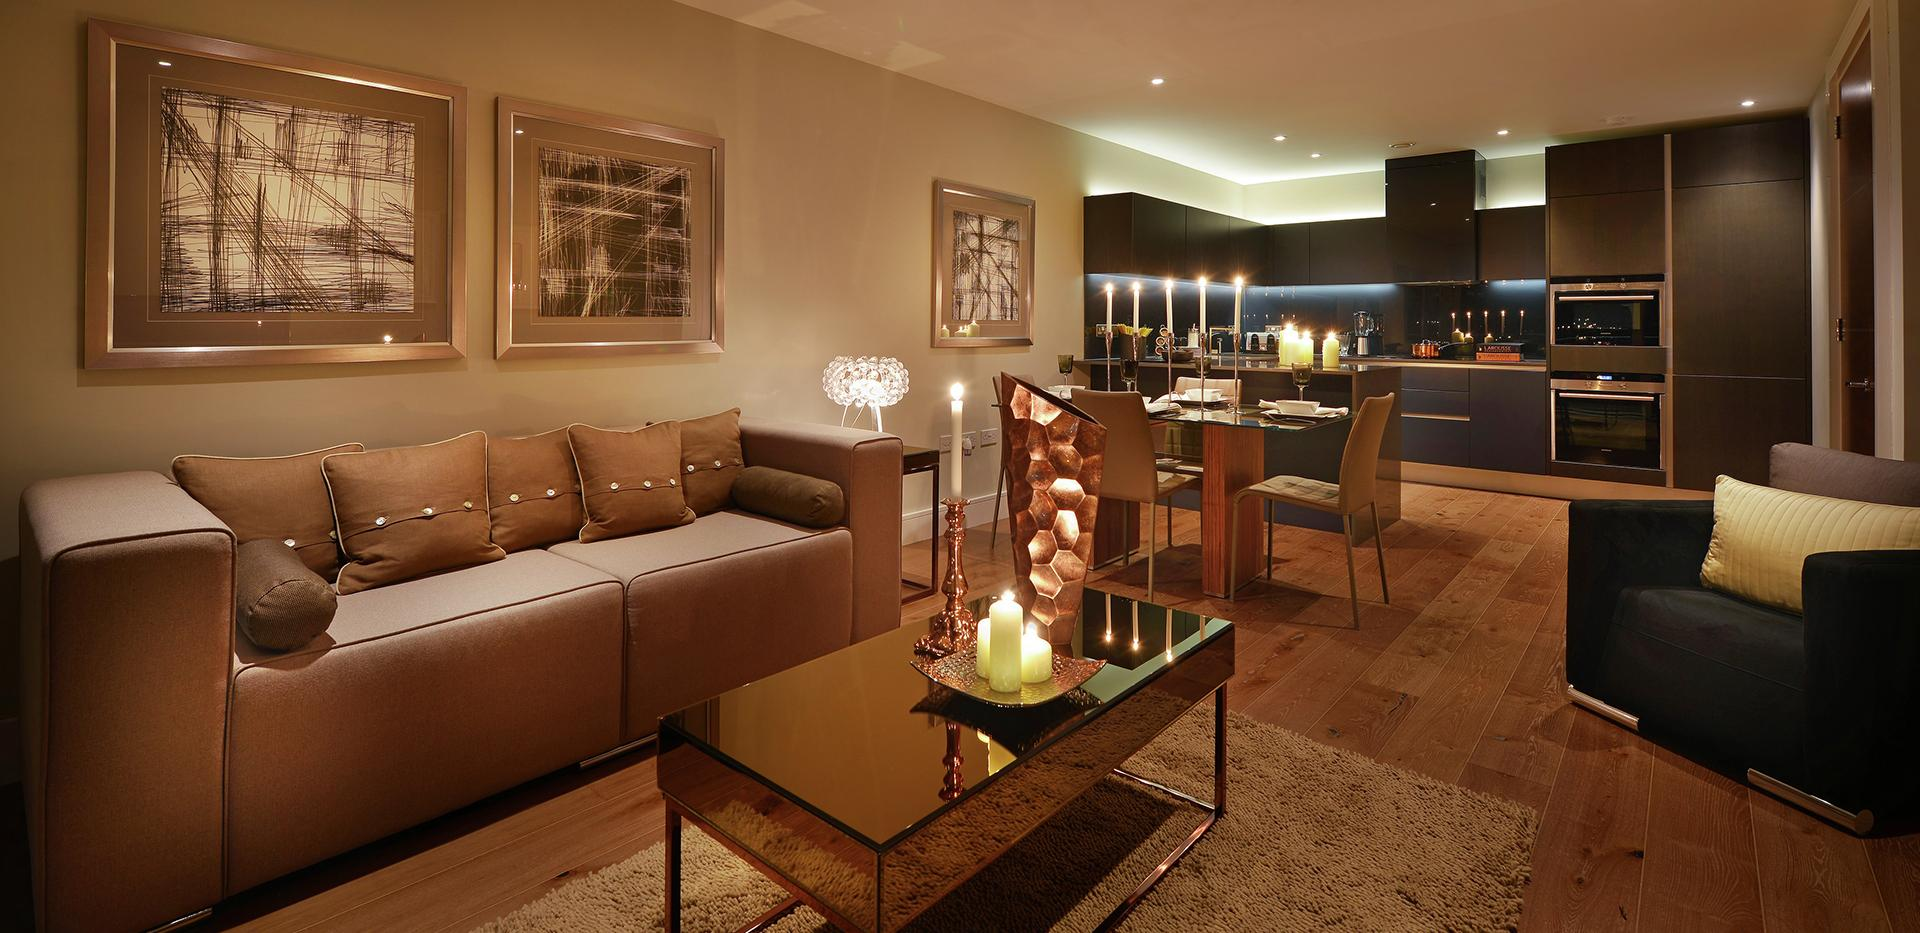 Berkeley Homes, Kidbrooke Village, Blackheath Quarter, Wallace Apartmetnts, Candlelit, Living Room,